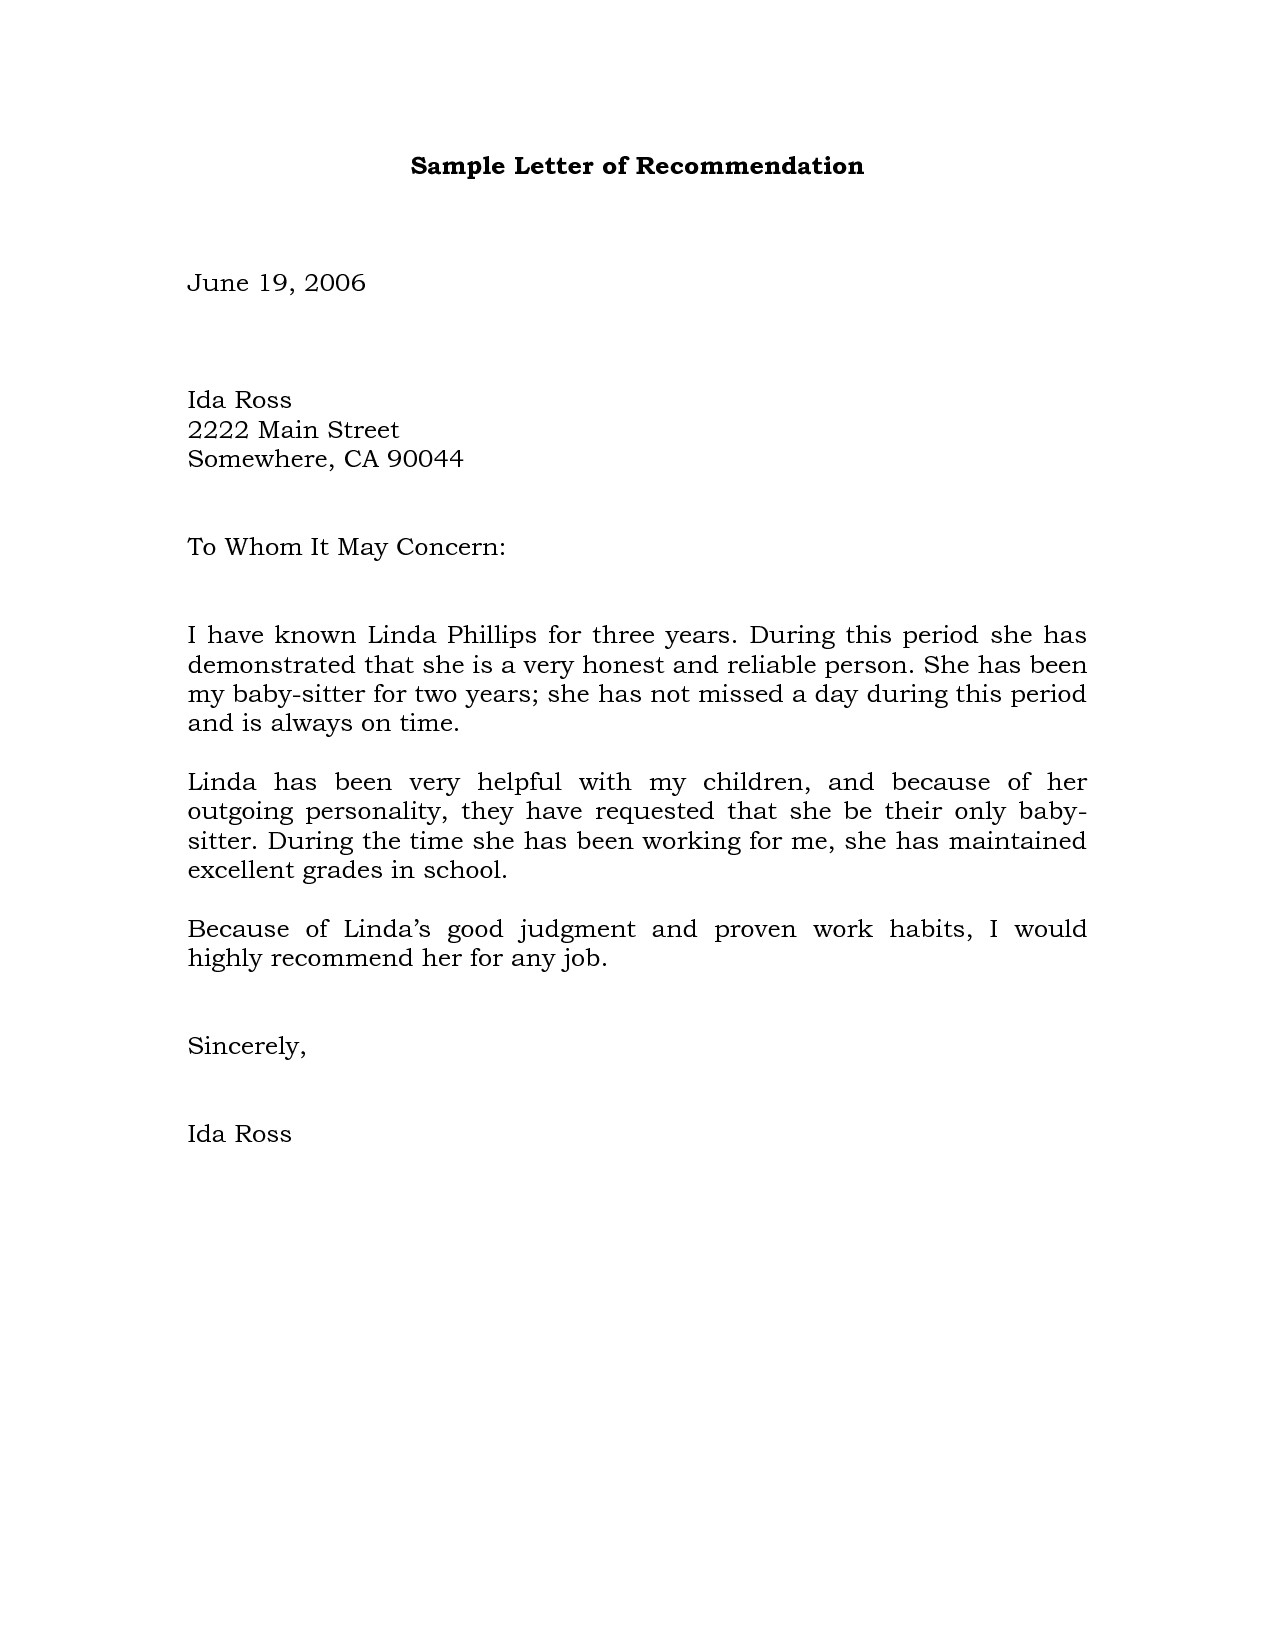 Business Referral Letter Template - Sample Re Mendation Letter Example Projects to Try